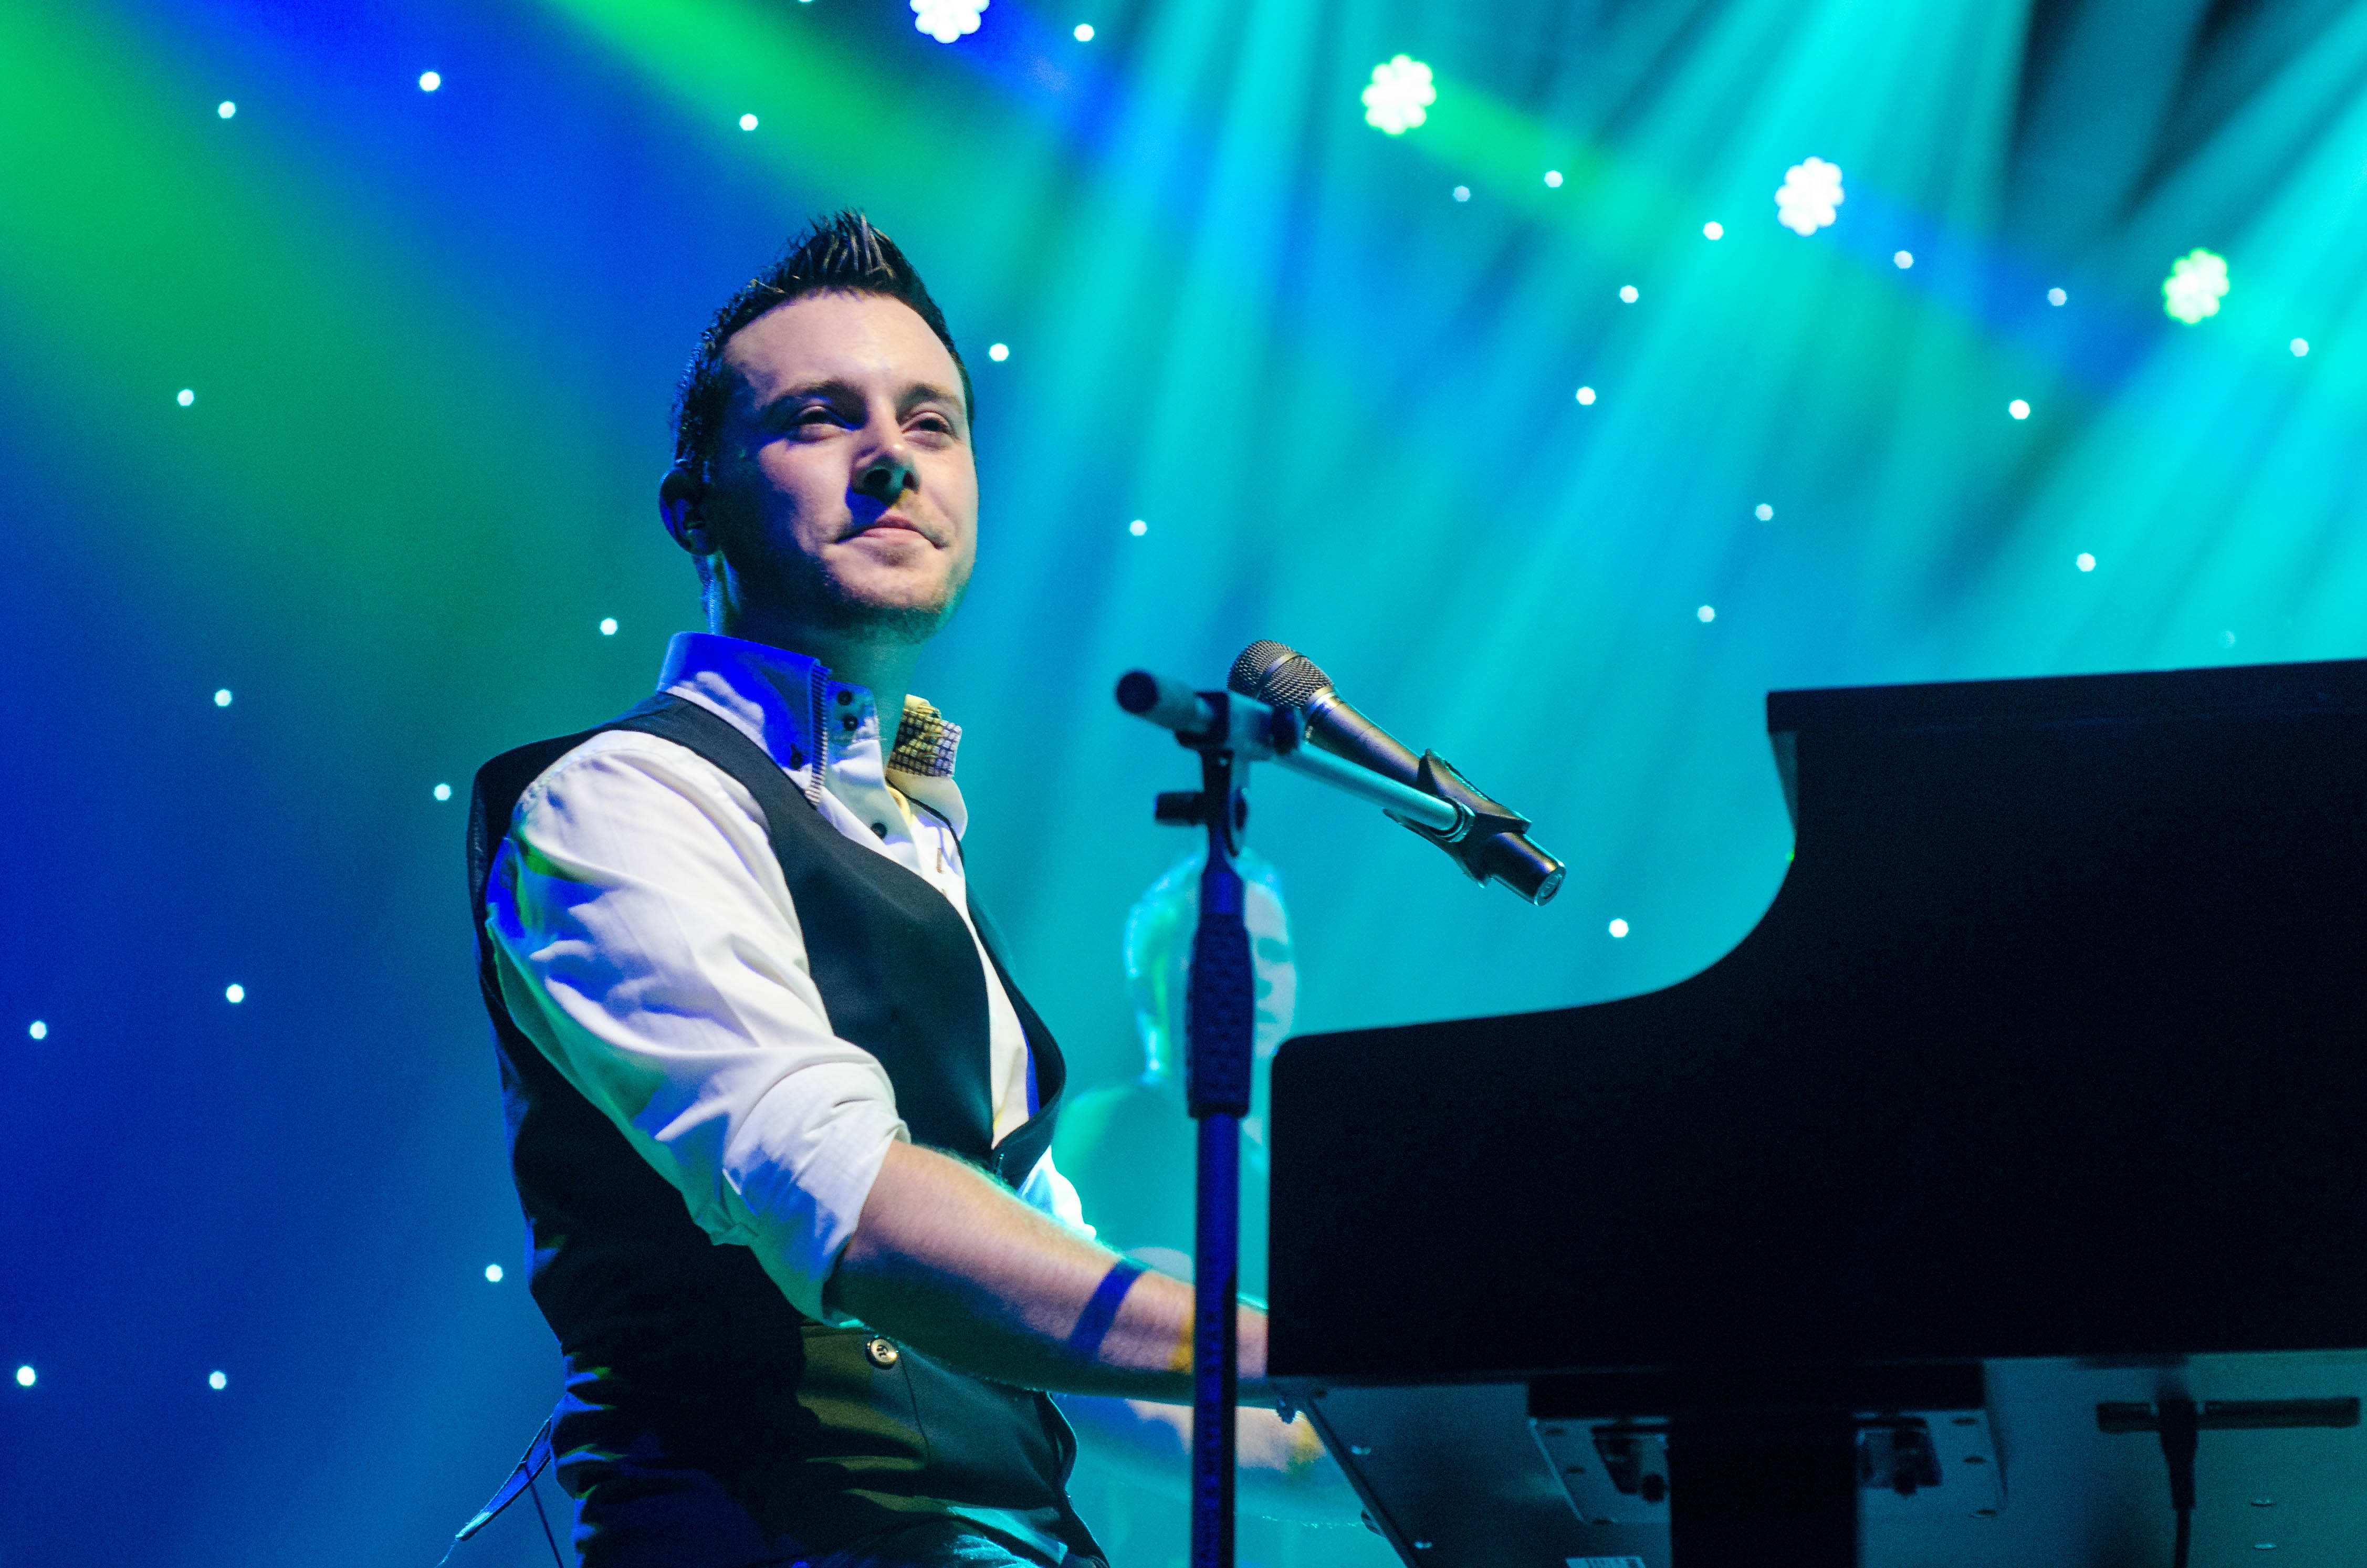 nathan-carter-at-the-marquee-cork-by-sean-smyth-15-6-14-28-of-55